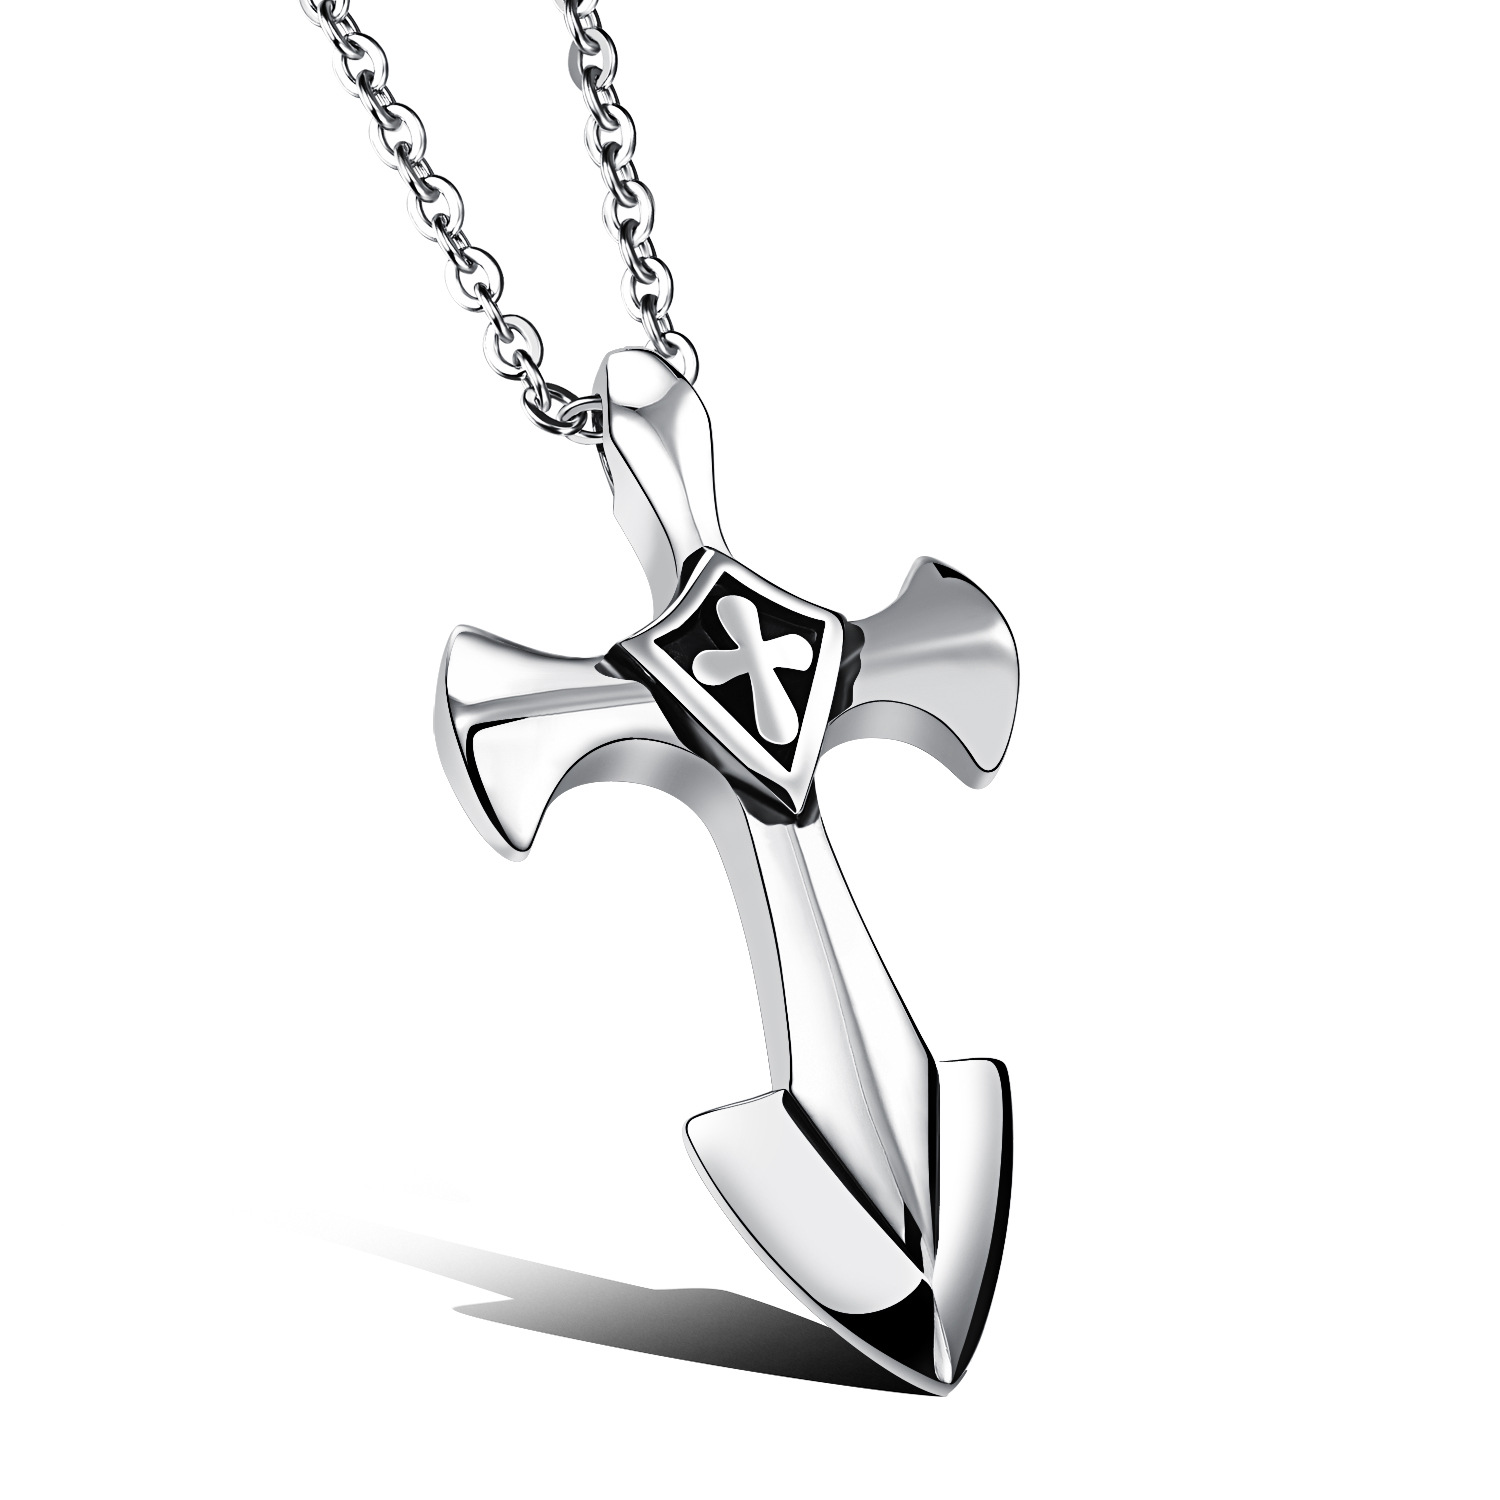 Stainless Steel Crusades Cross Pendant Men Necklace Punk Rock Style With 50cm Link Chain Polishing Jewelry Gift